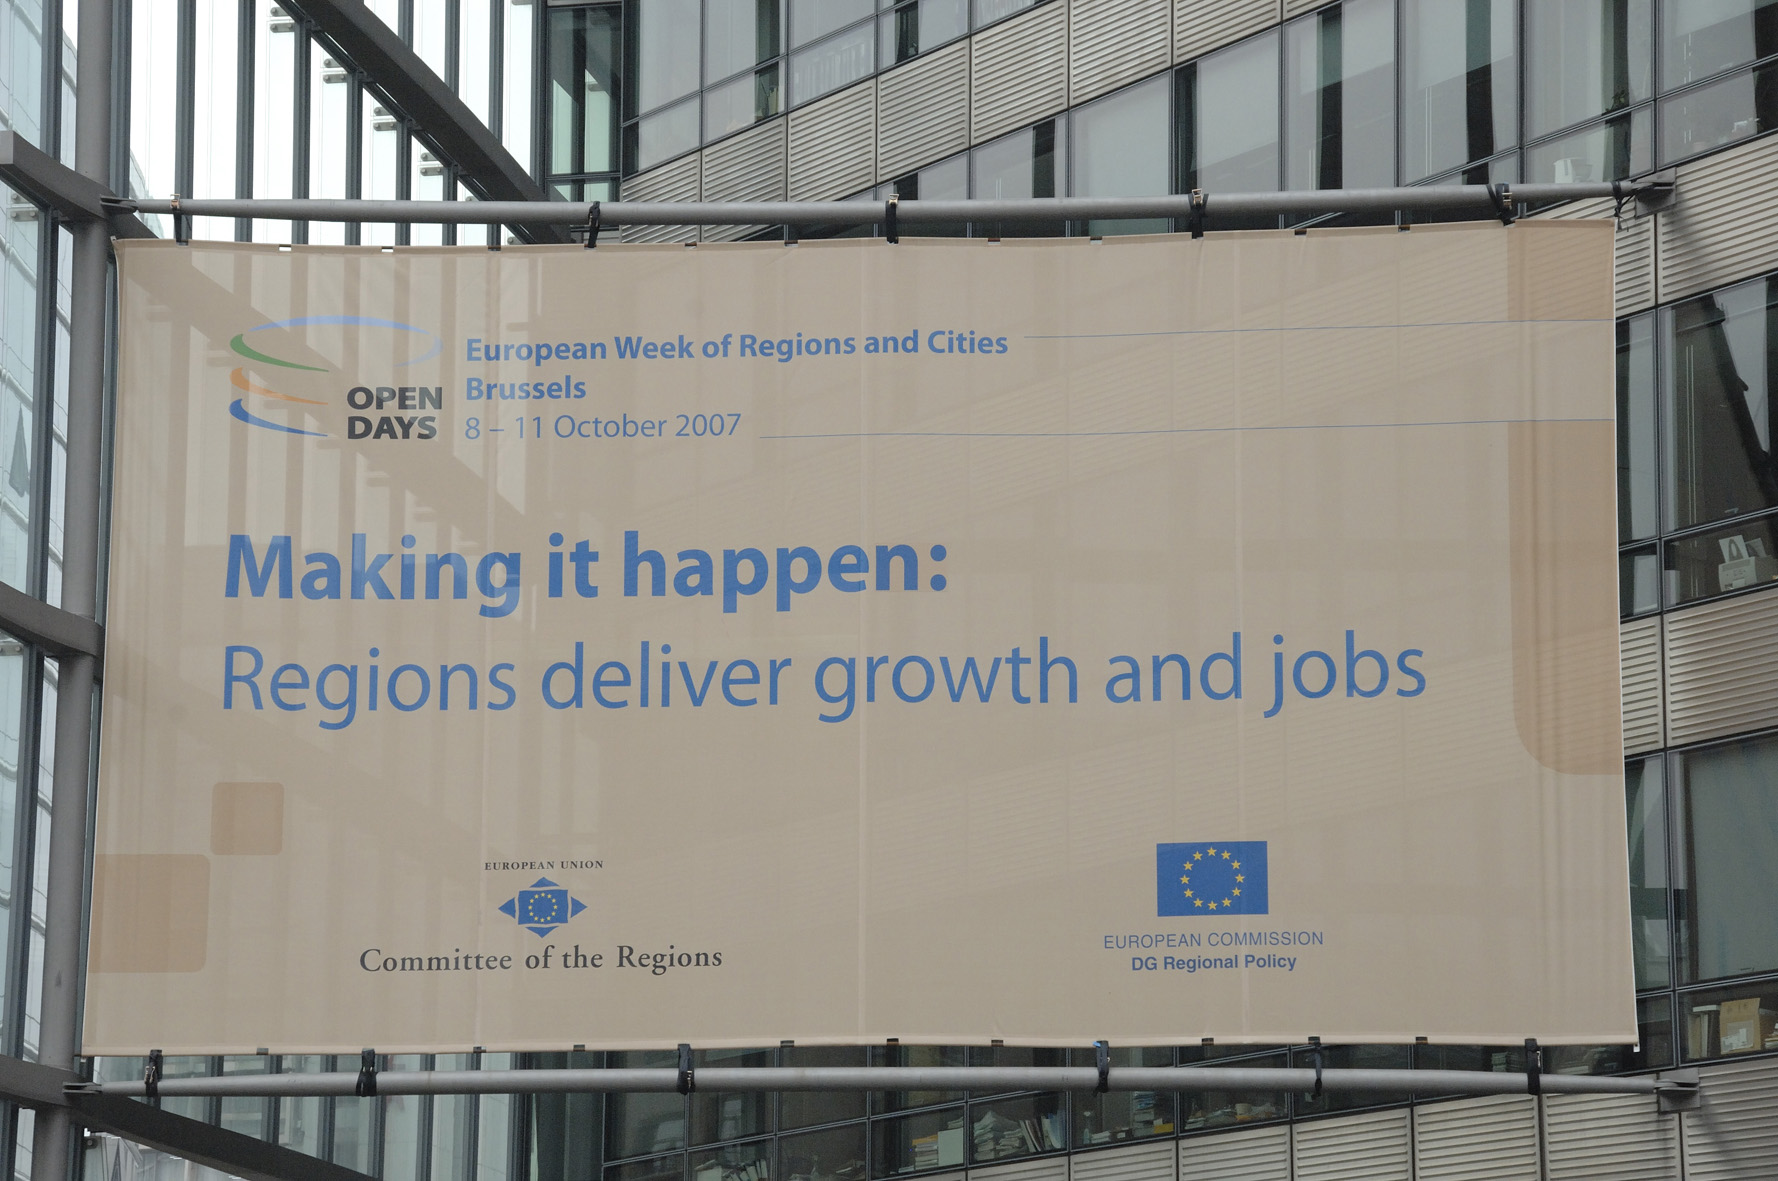 Opening of Open Days – European Week of Regions and Cities